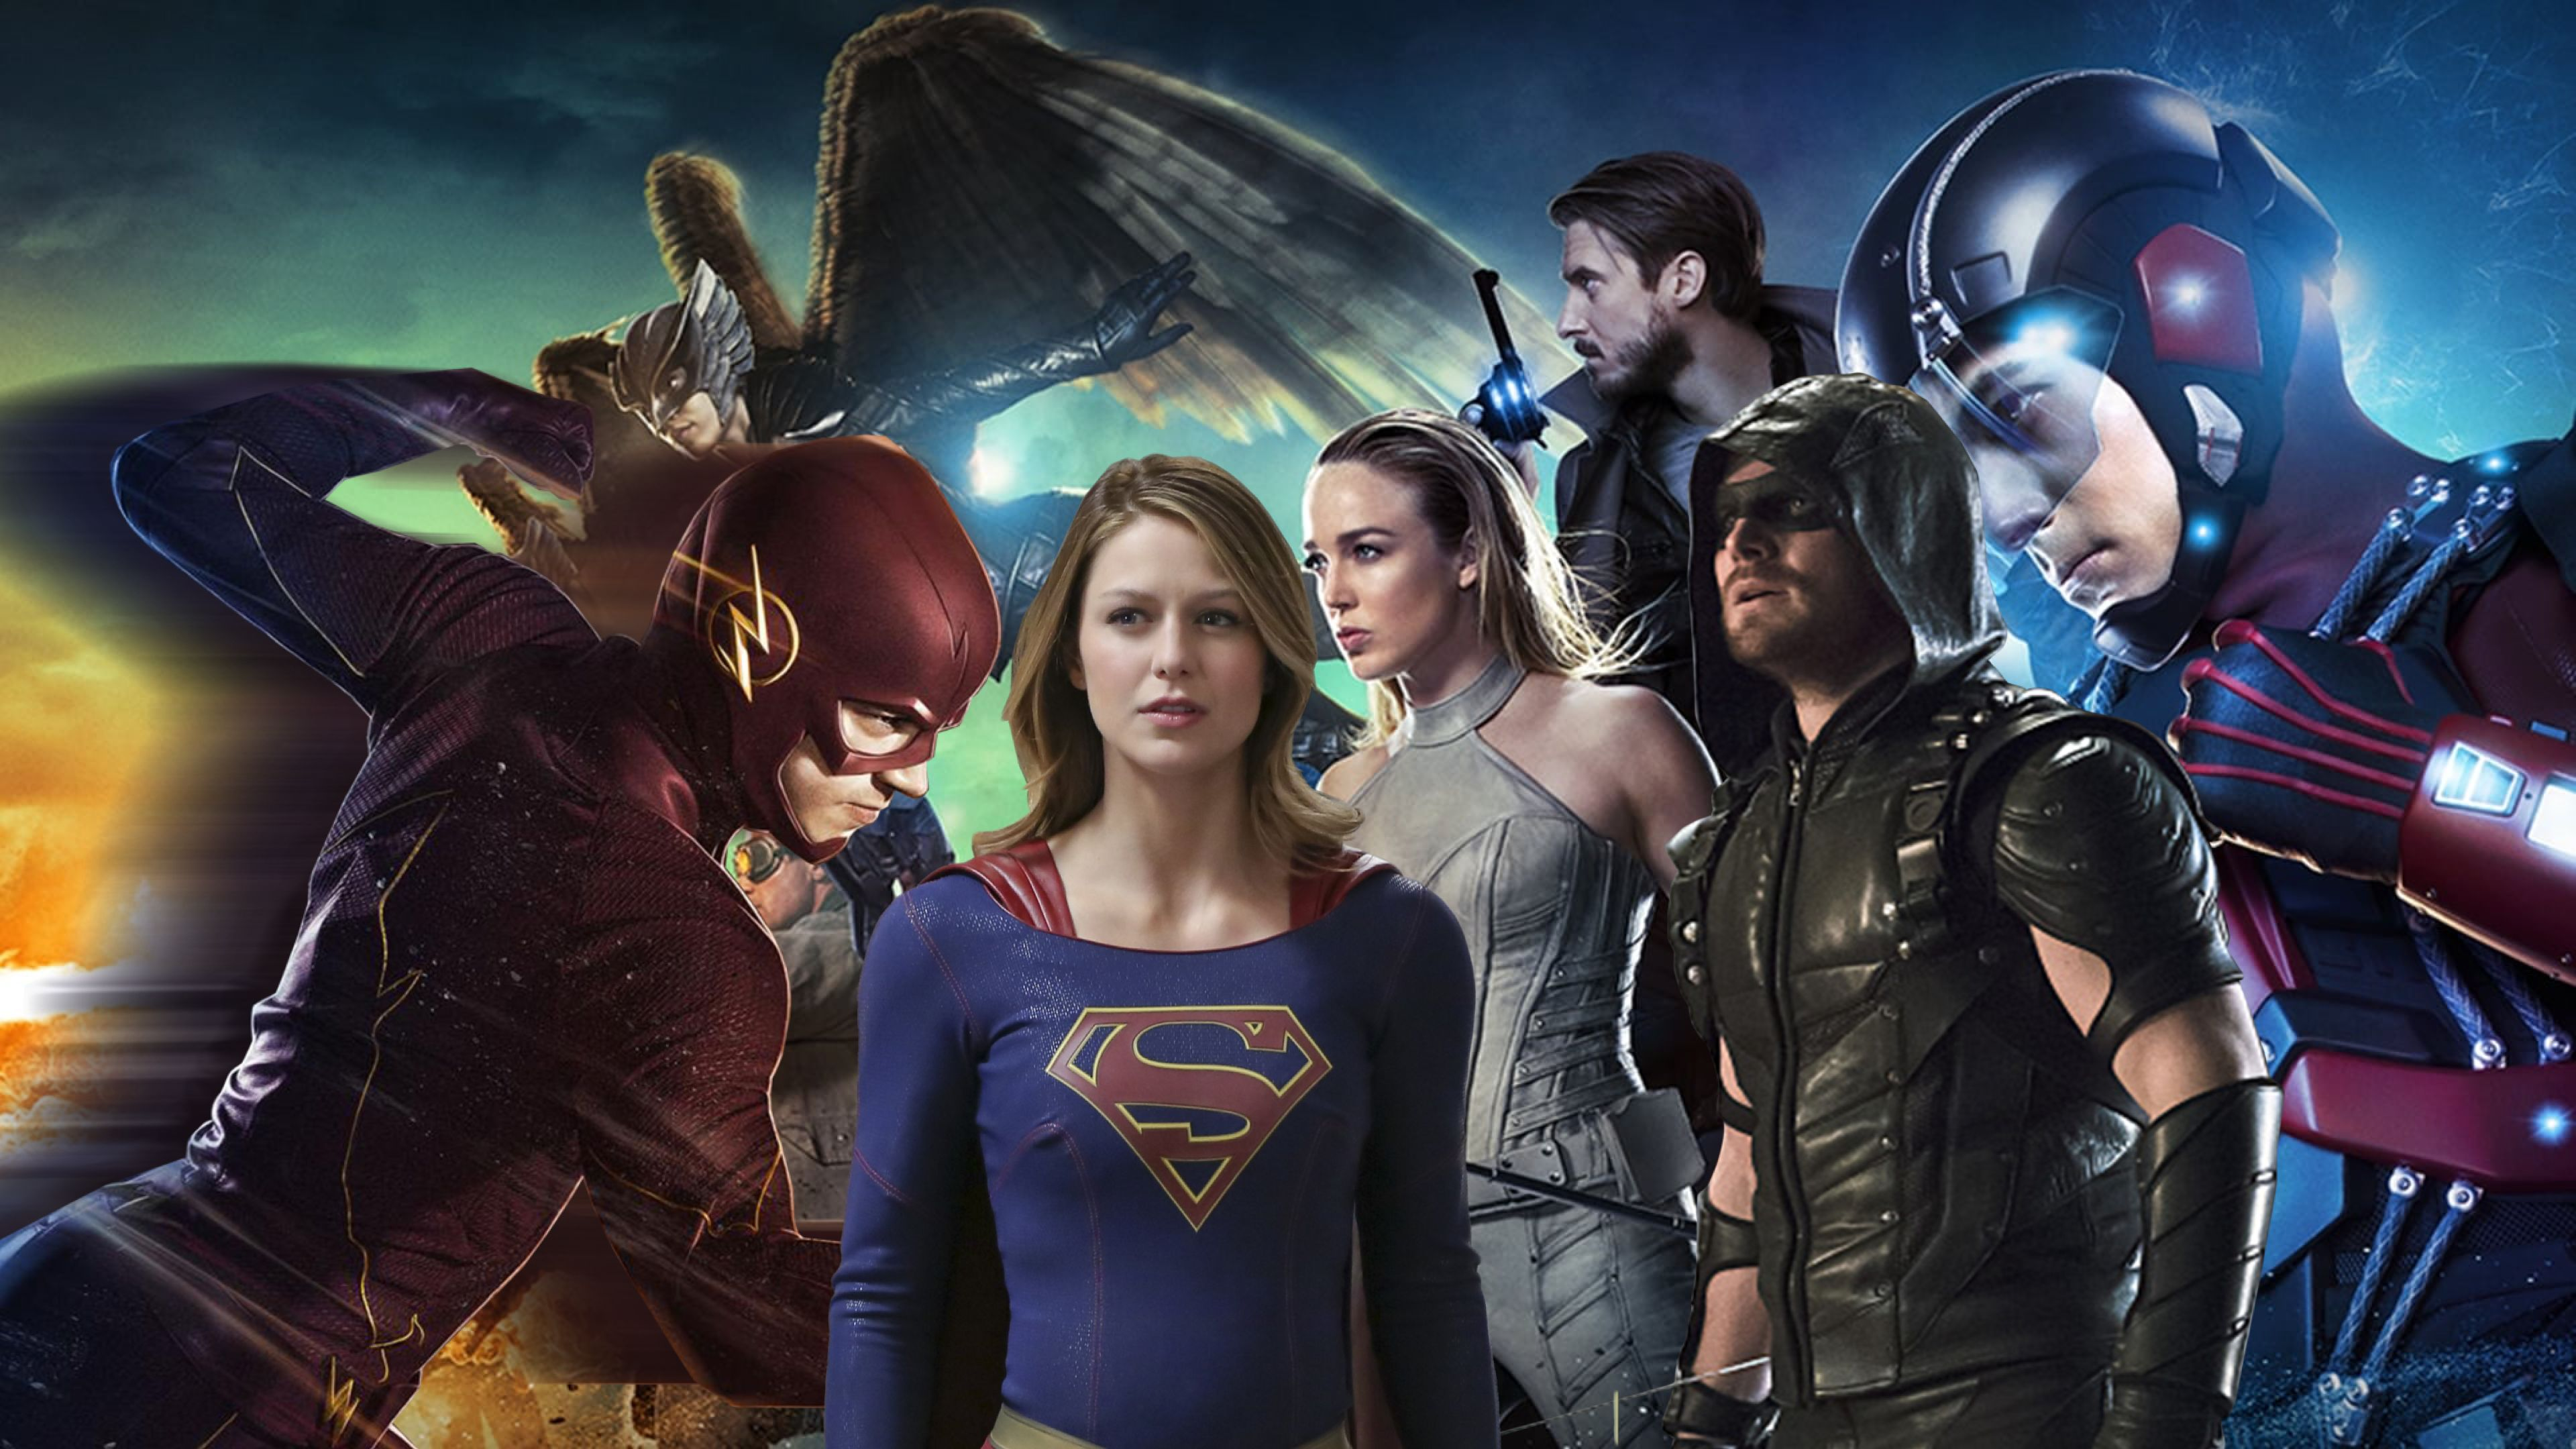 Novedades MUY IMPORTANTES del MEGA-CROSSOVER Arrow, Flash, Supergirl, DC Legends.